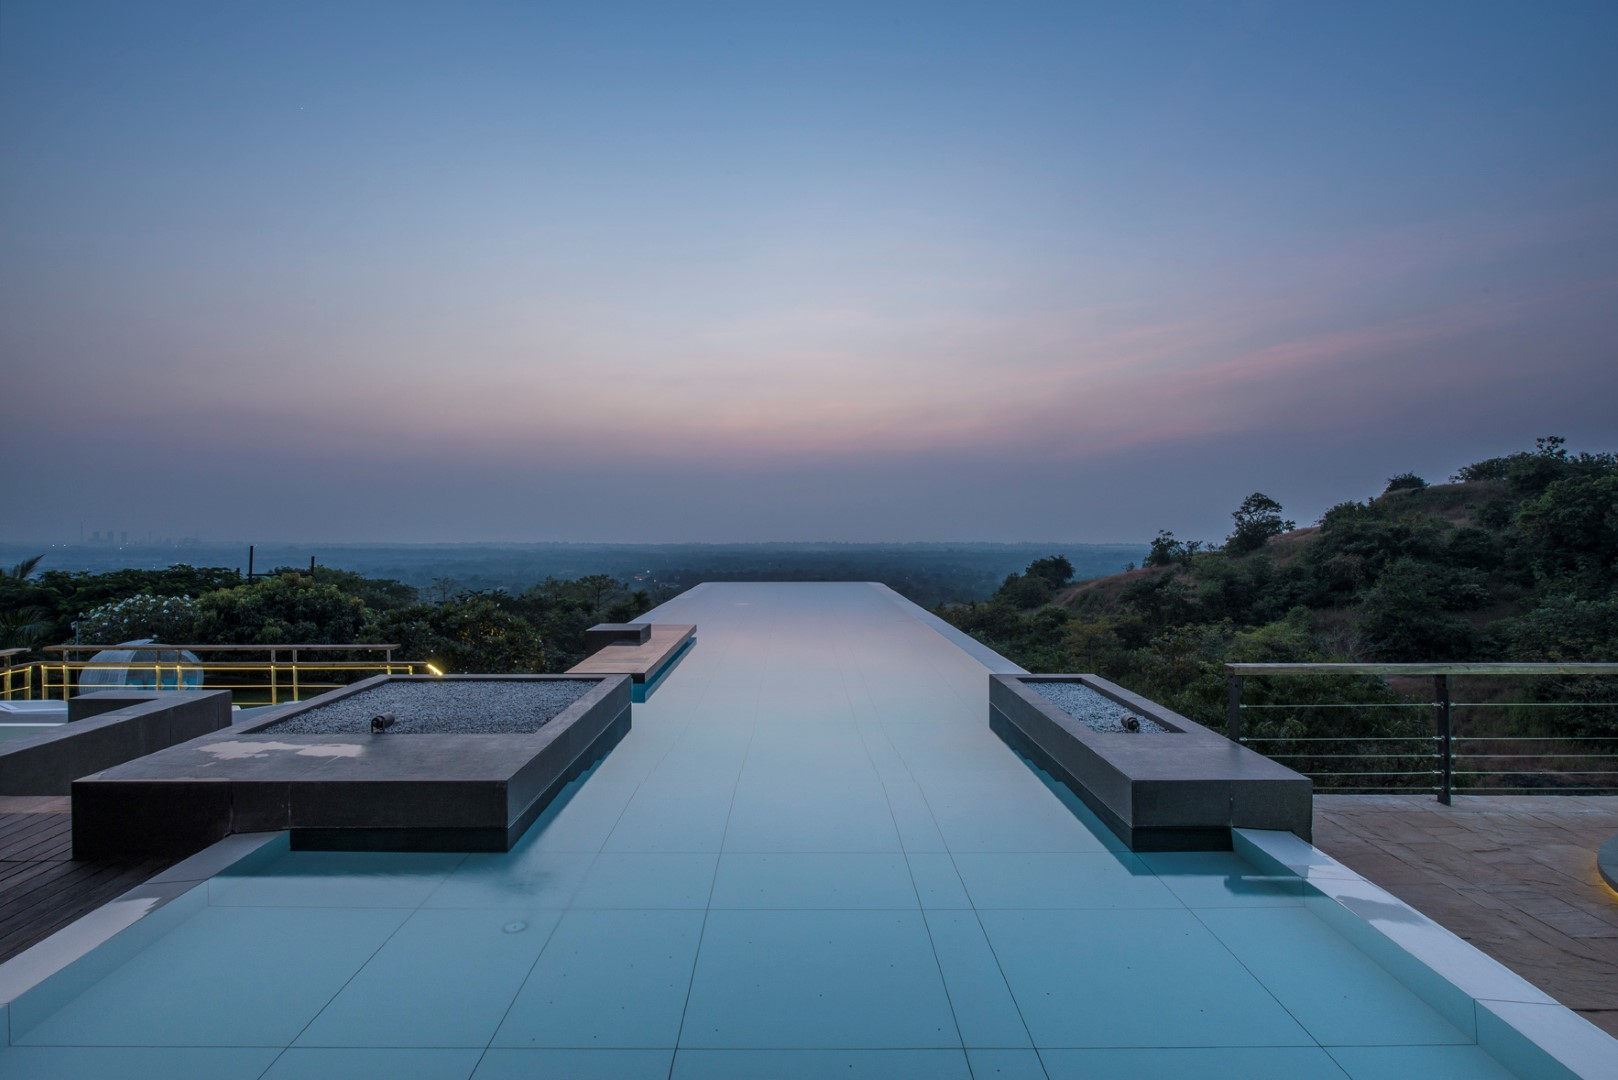 infinity pool house. Contemporary House In Infinity Pool House